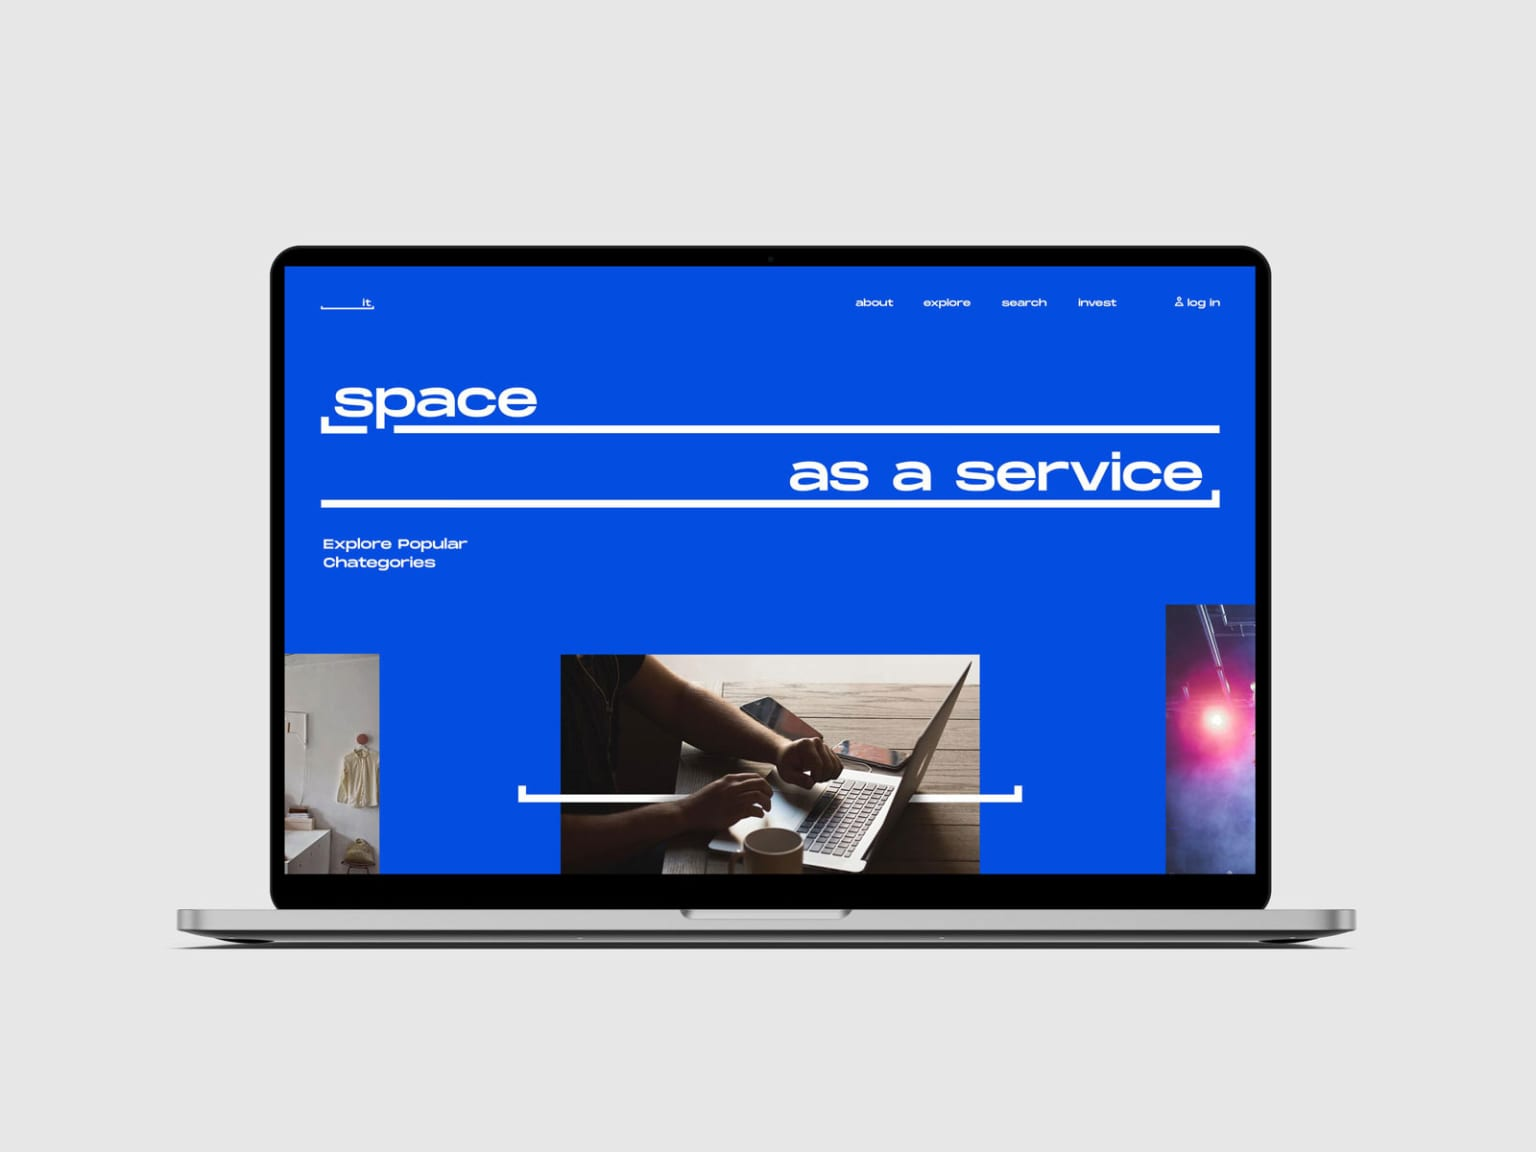 spaceit / space-as-a-service